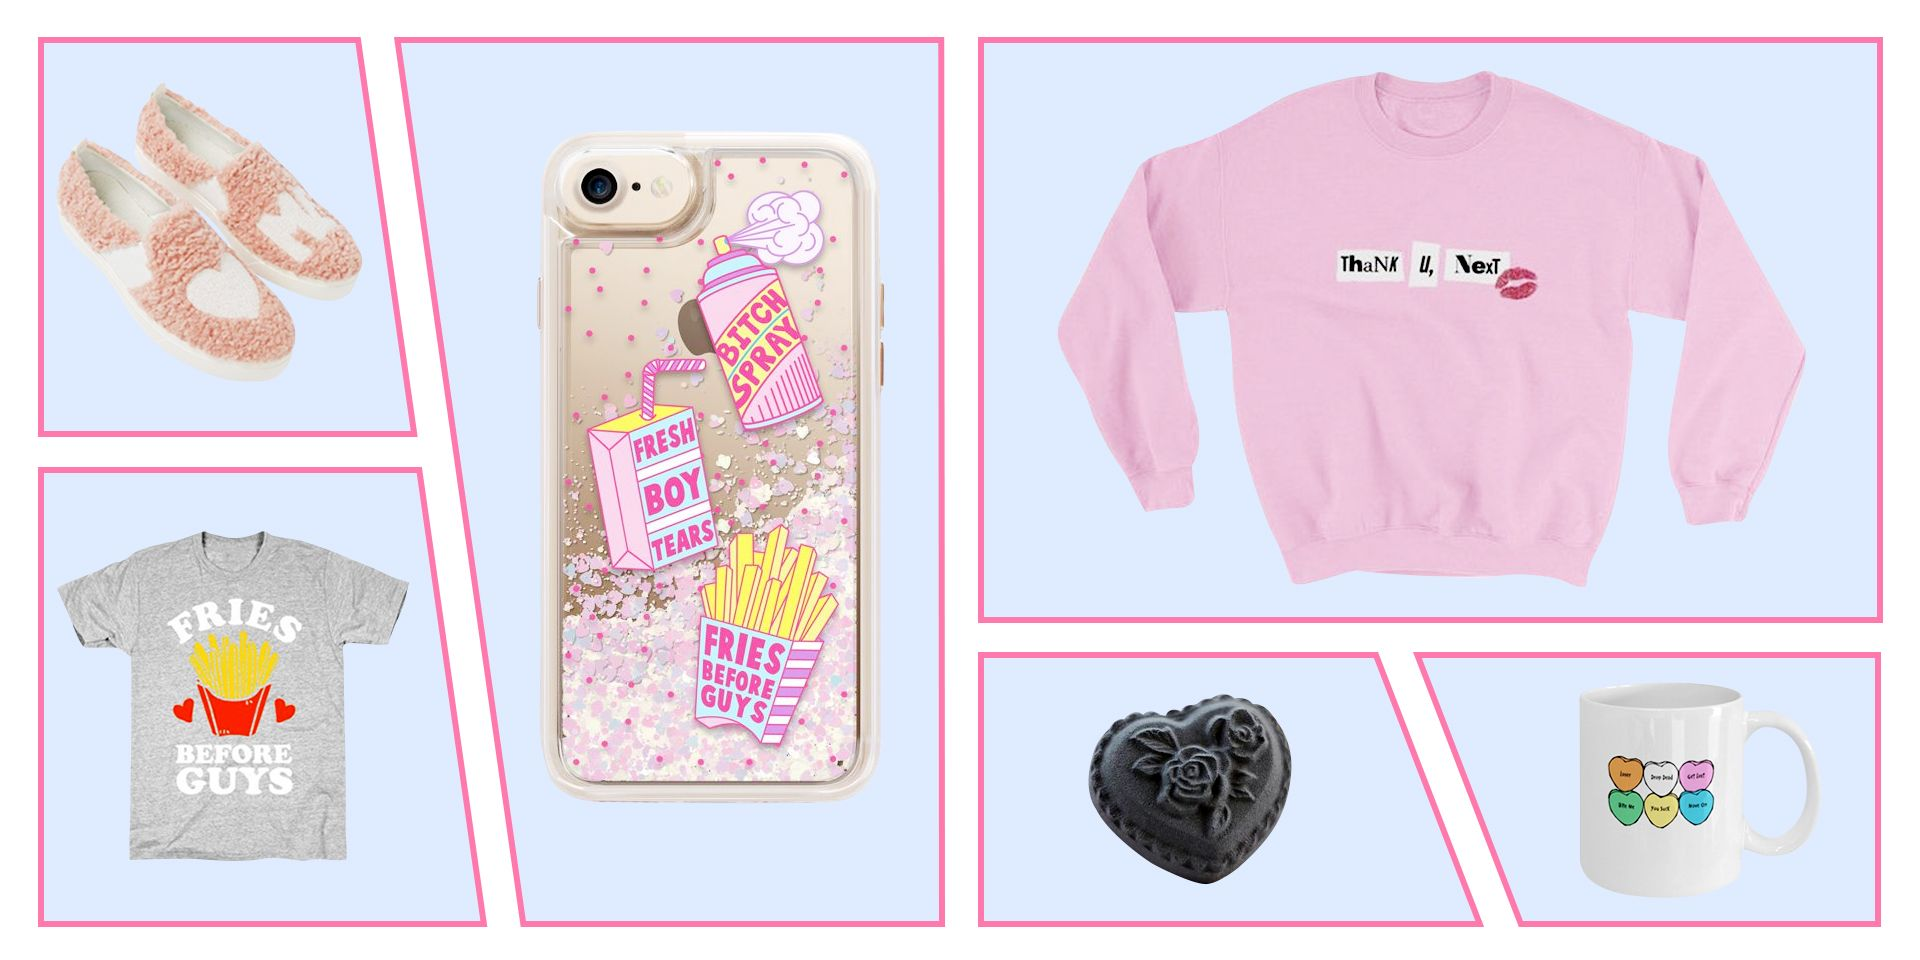 12 Amazing Anti-Valentine's Day Gifts Your Single Friends Will Love